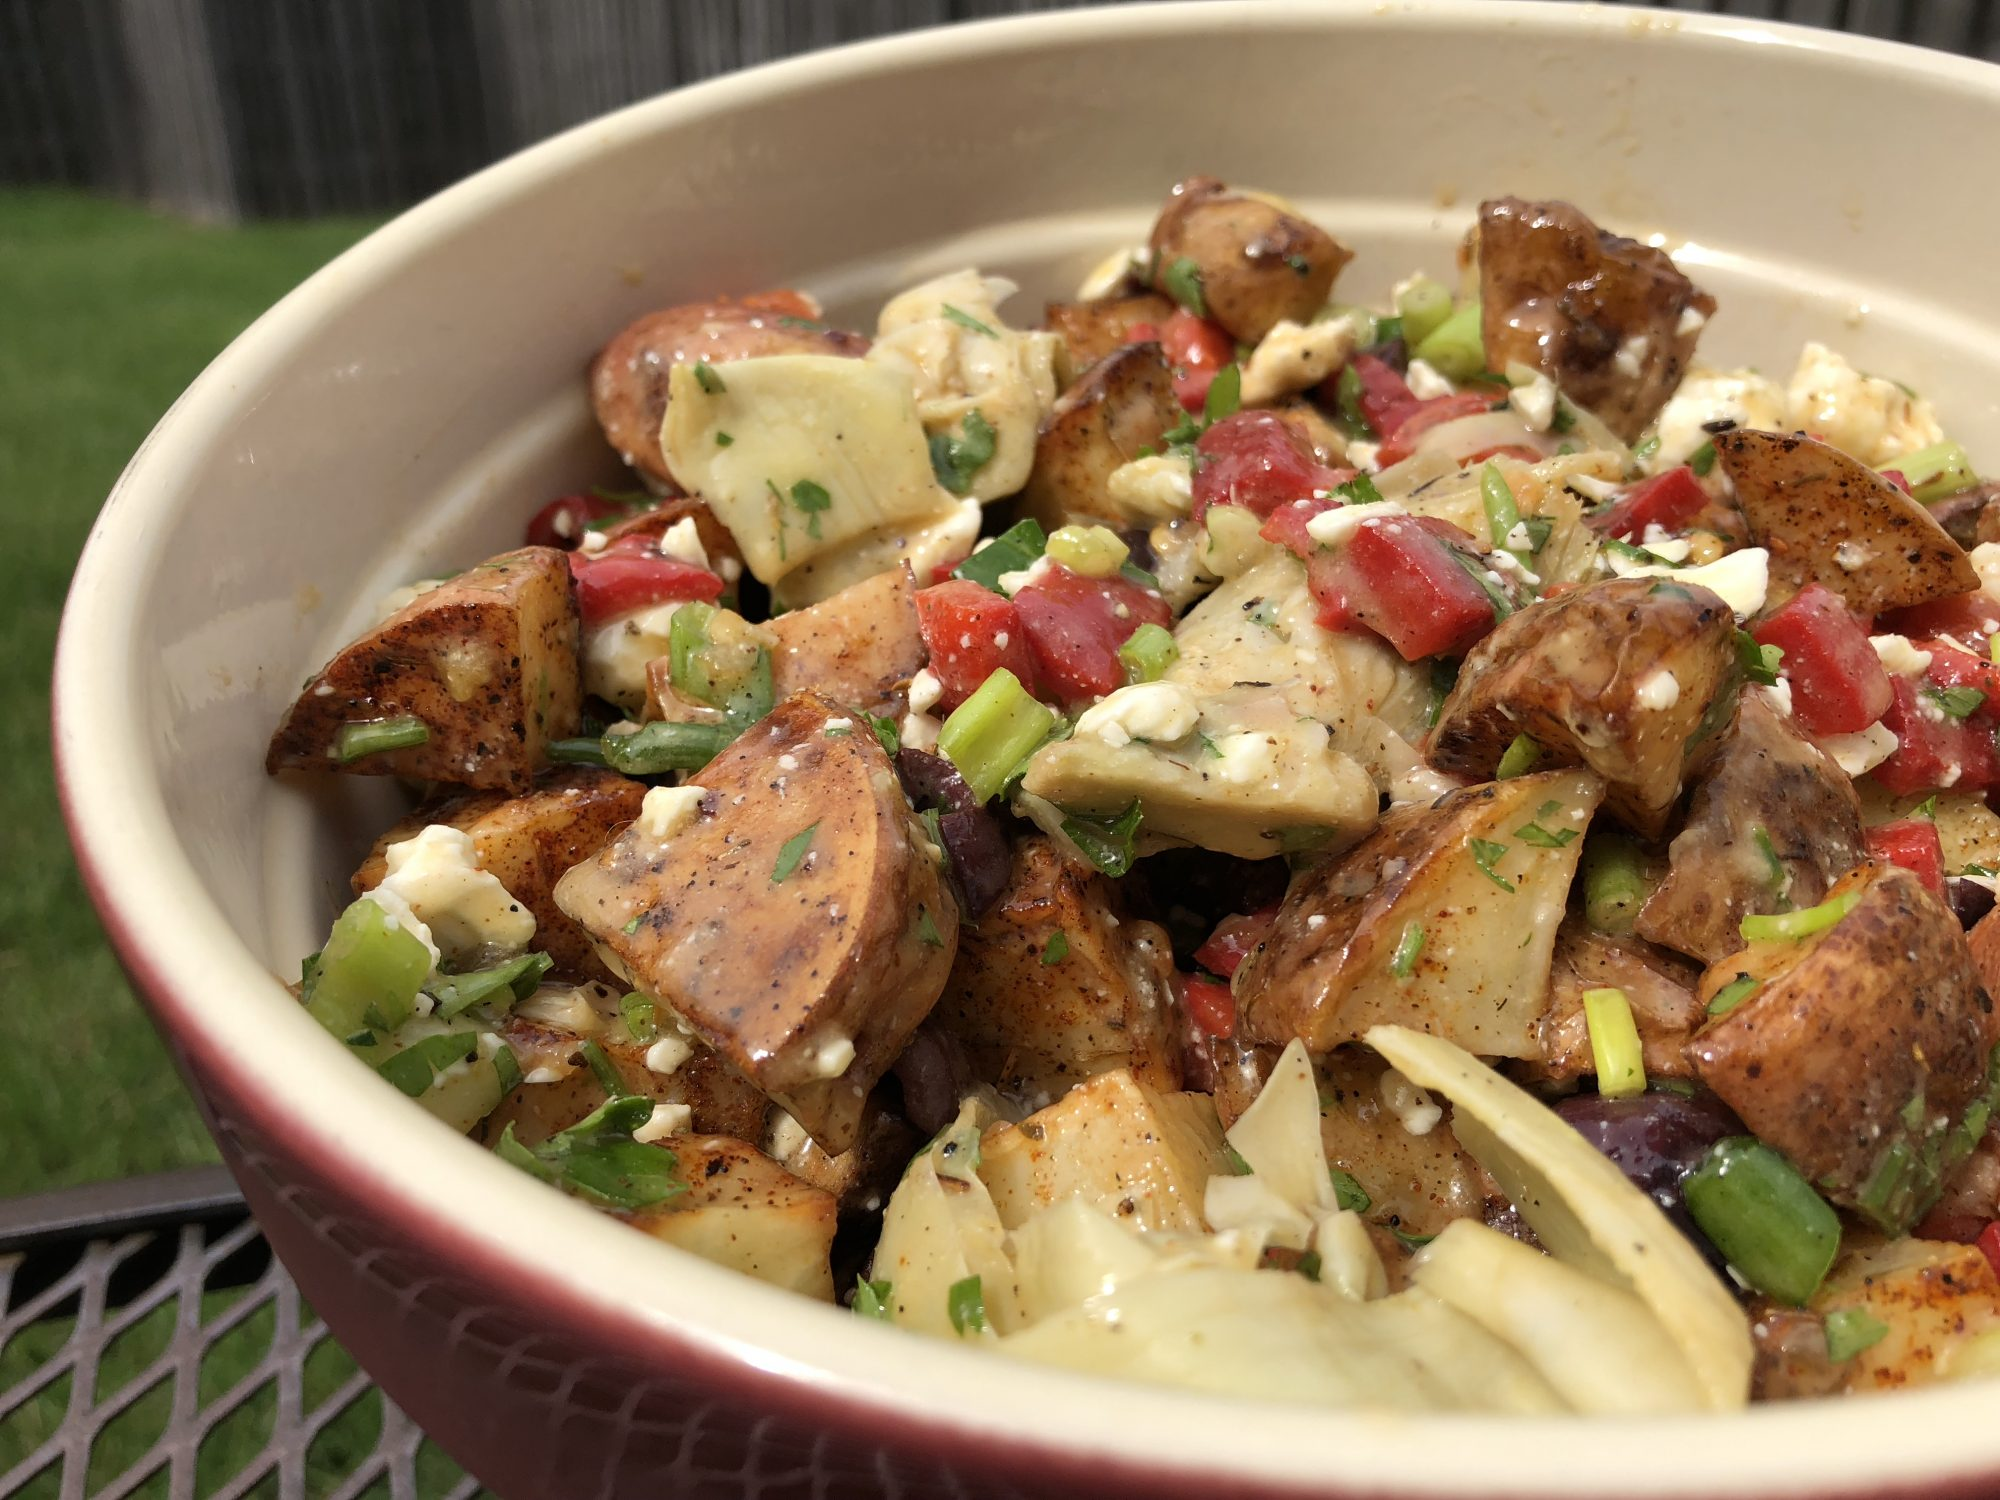 roasted potatoes with green onions, peppers, and artichokes